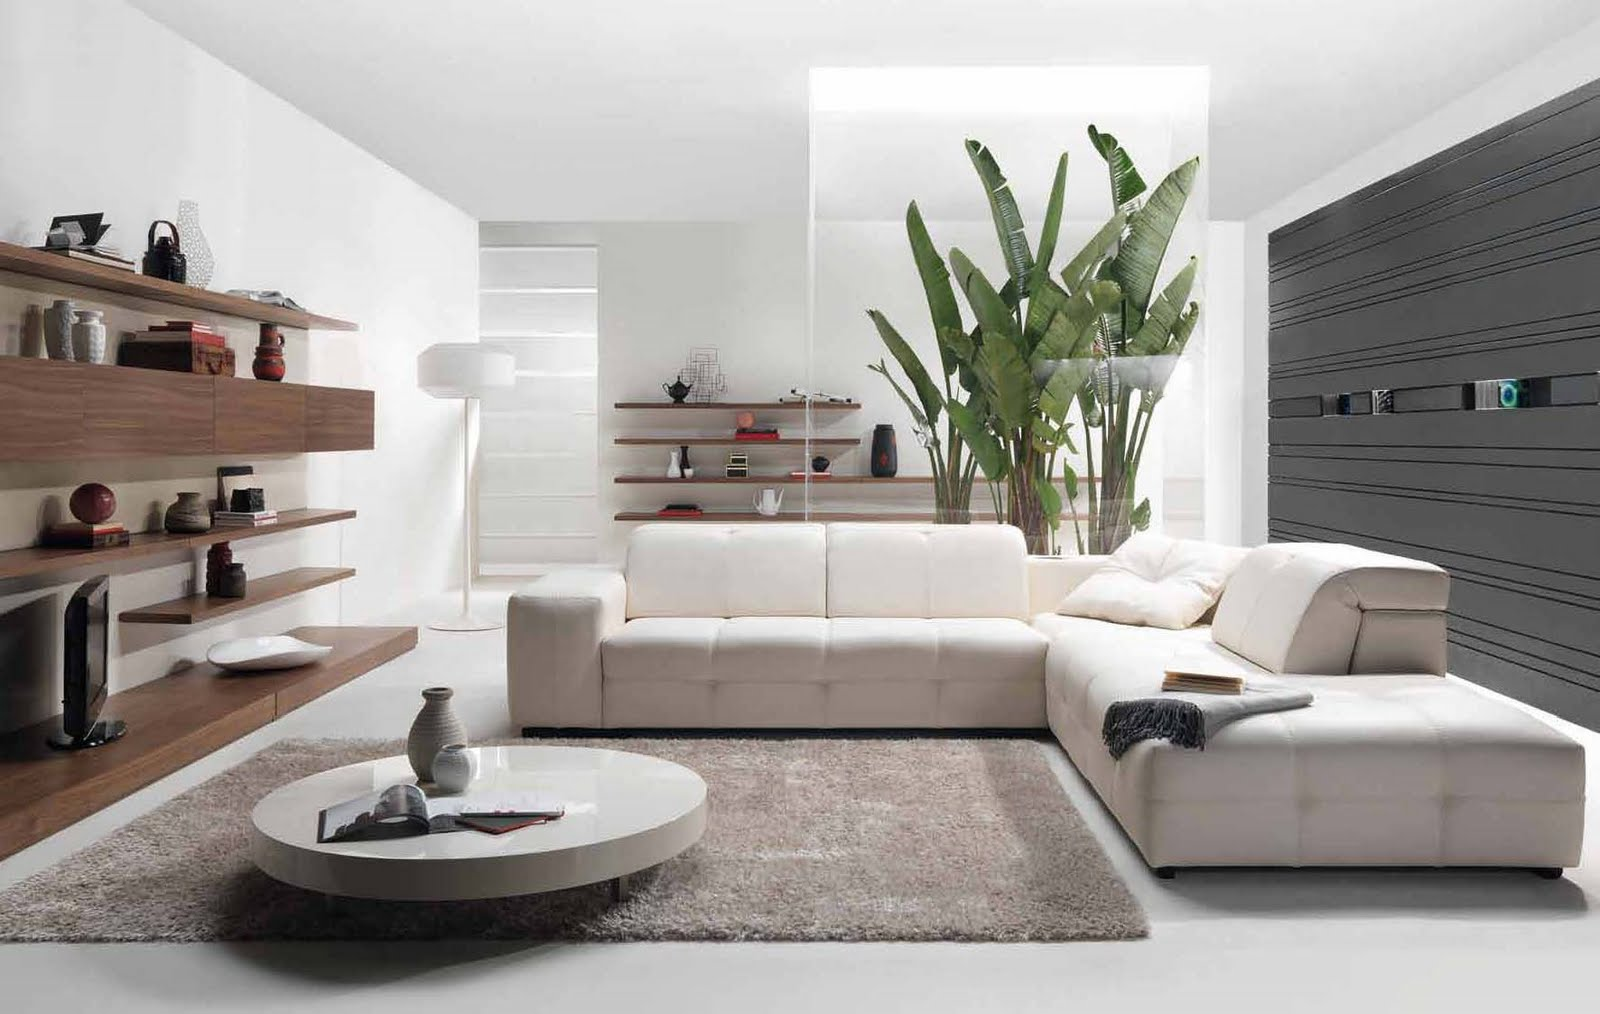 Future house design modern living room interior design for Living room style ideas